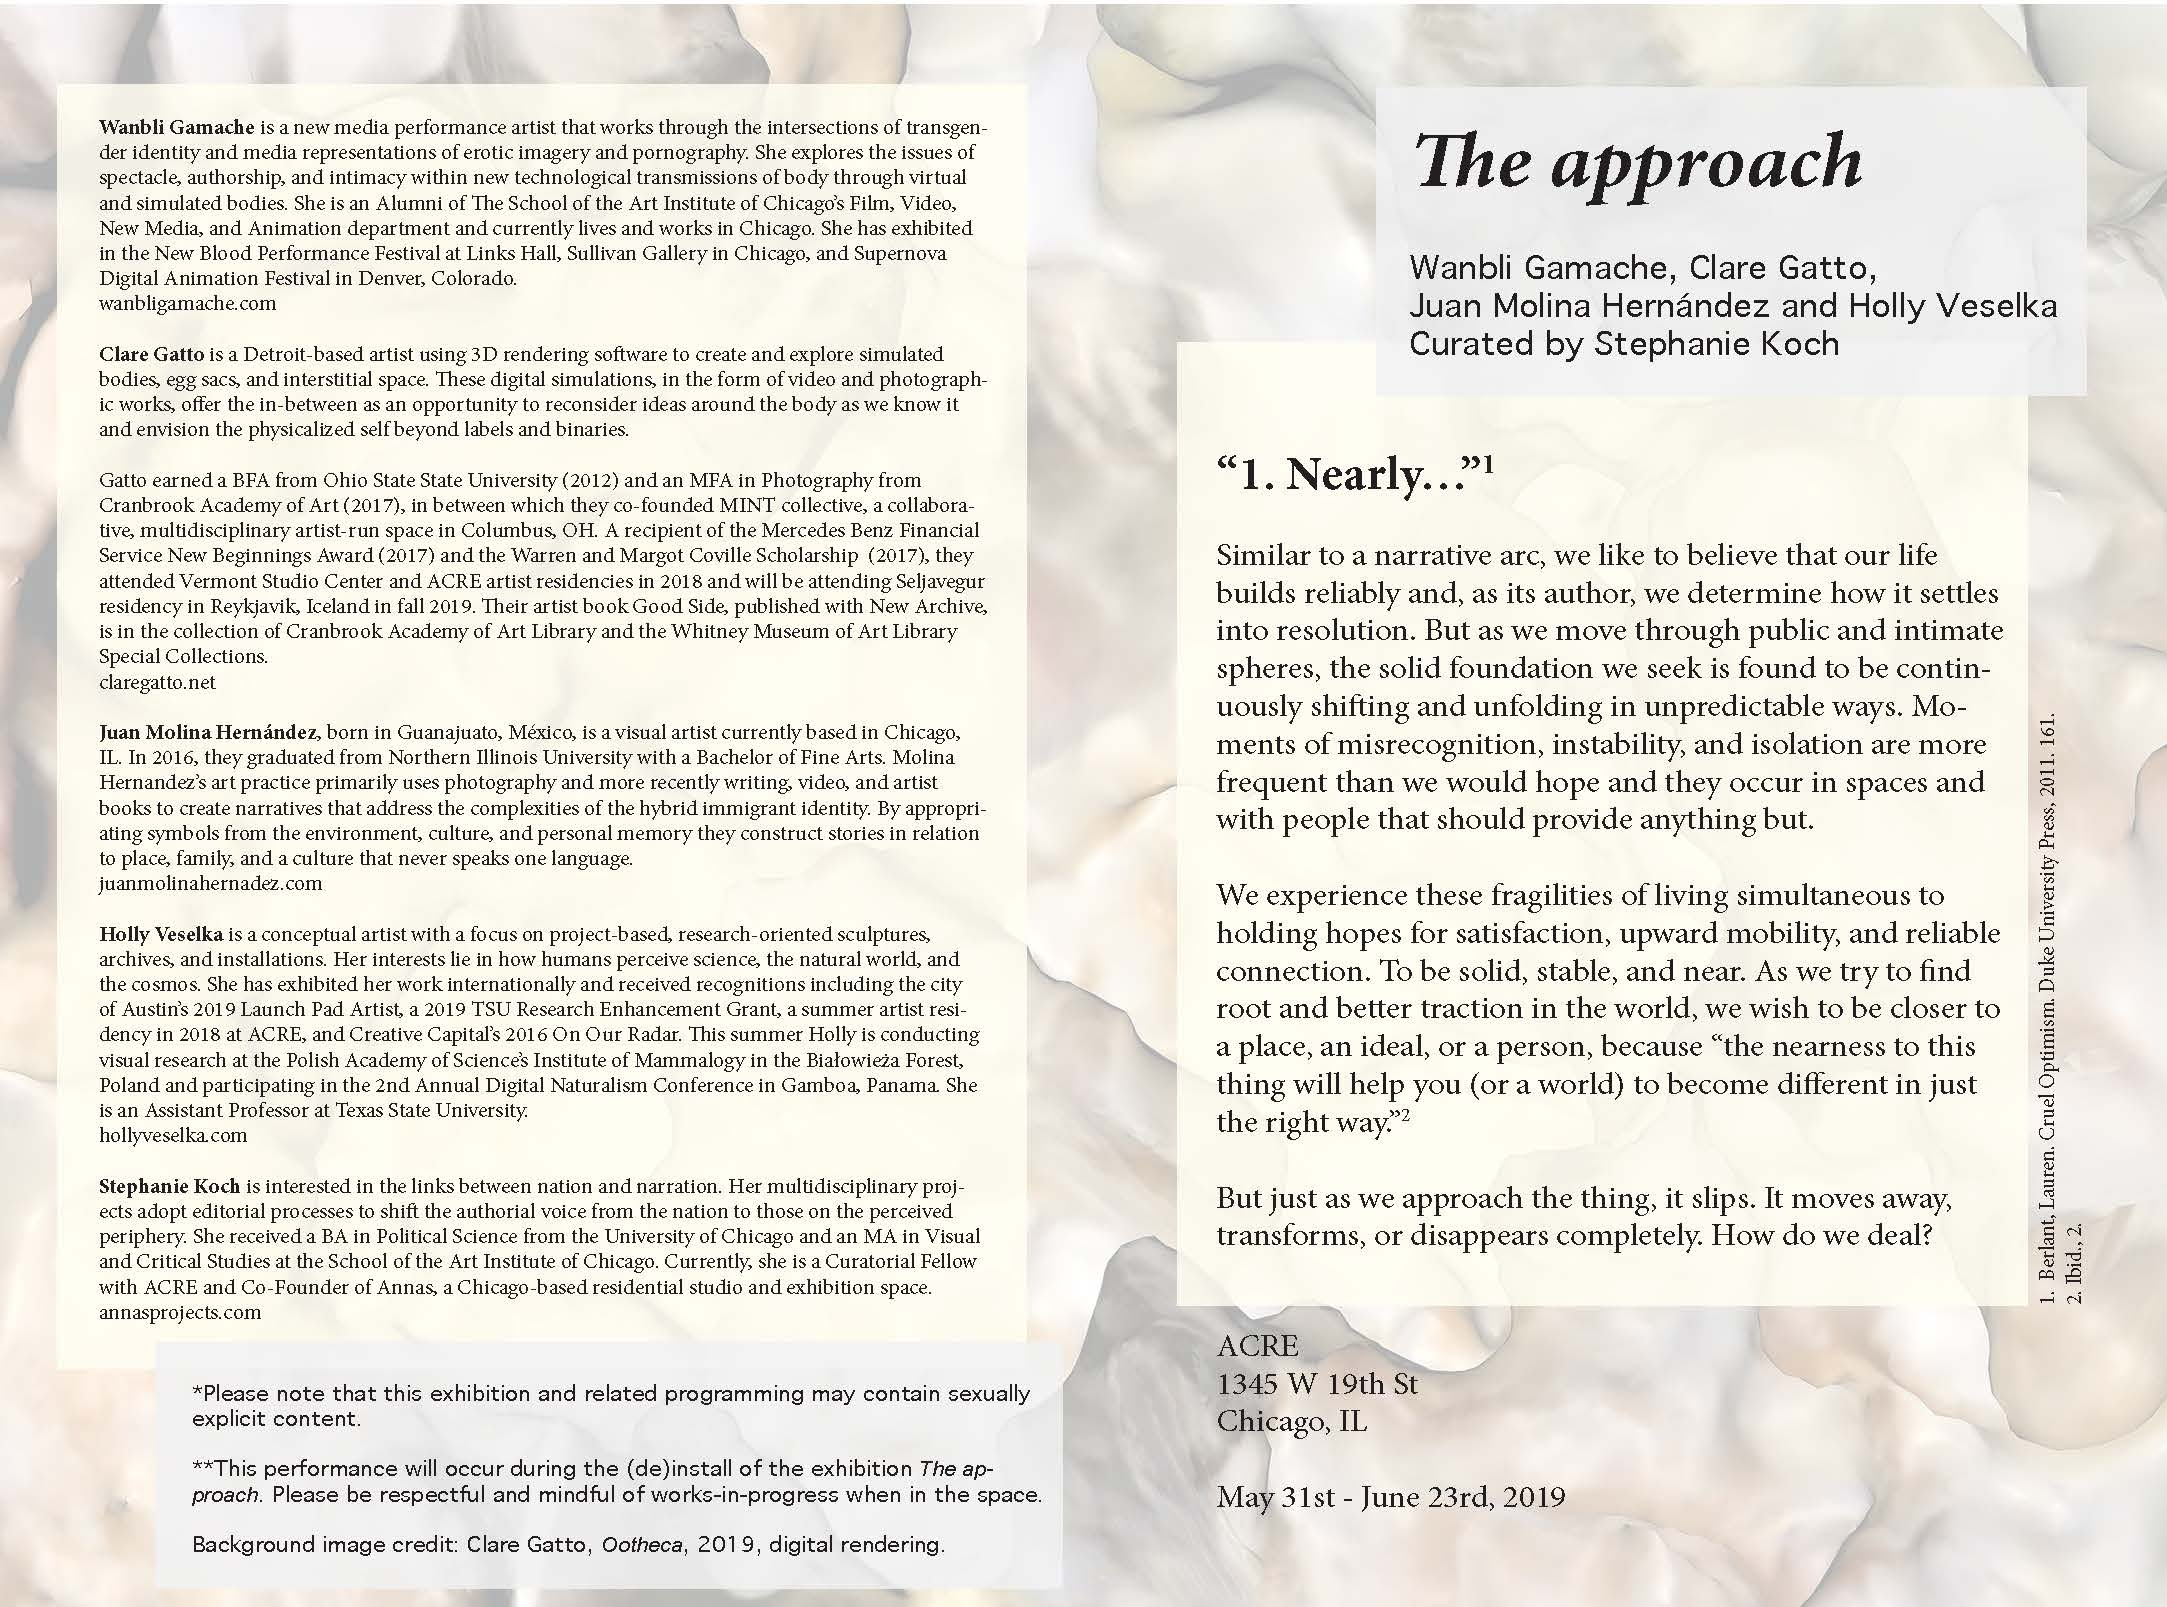 Theapproach_Page_1.jpg